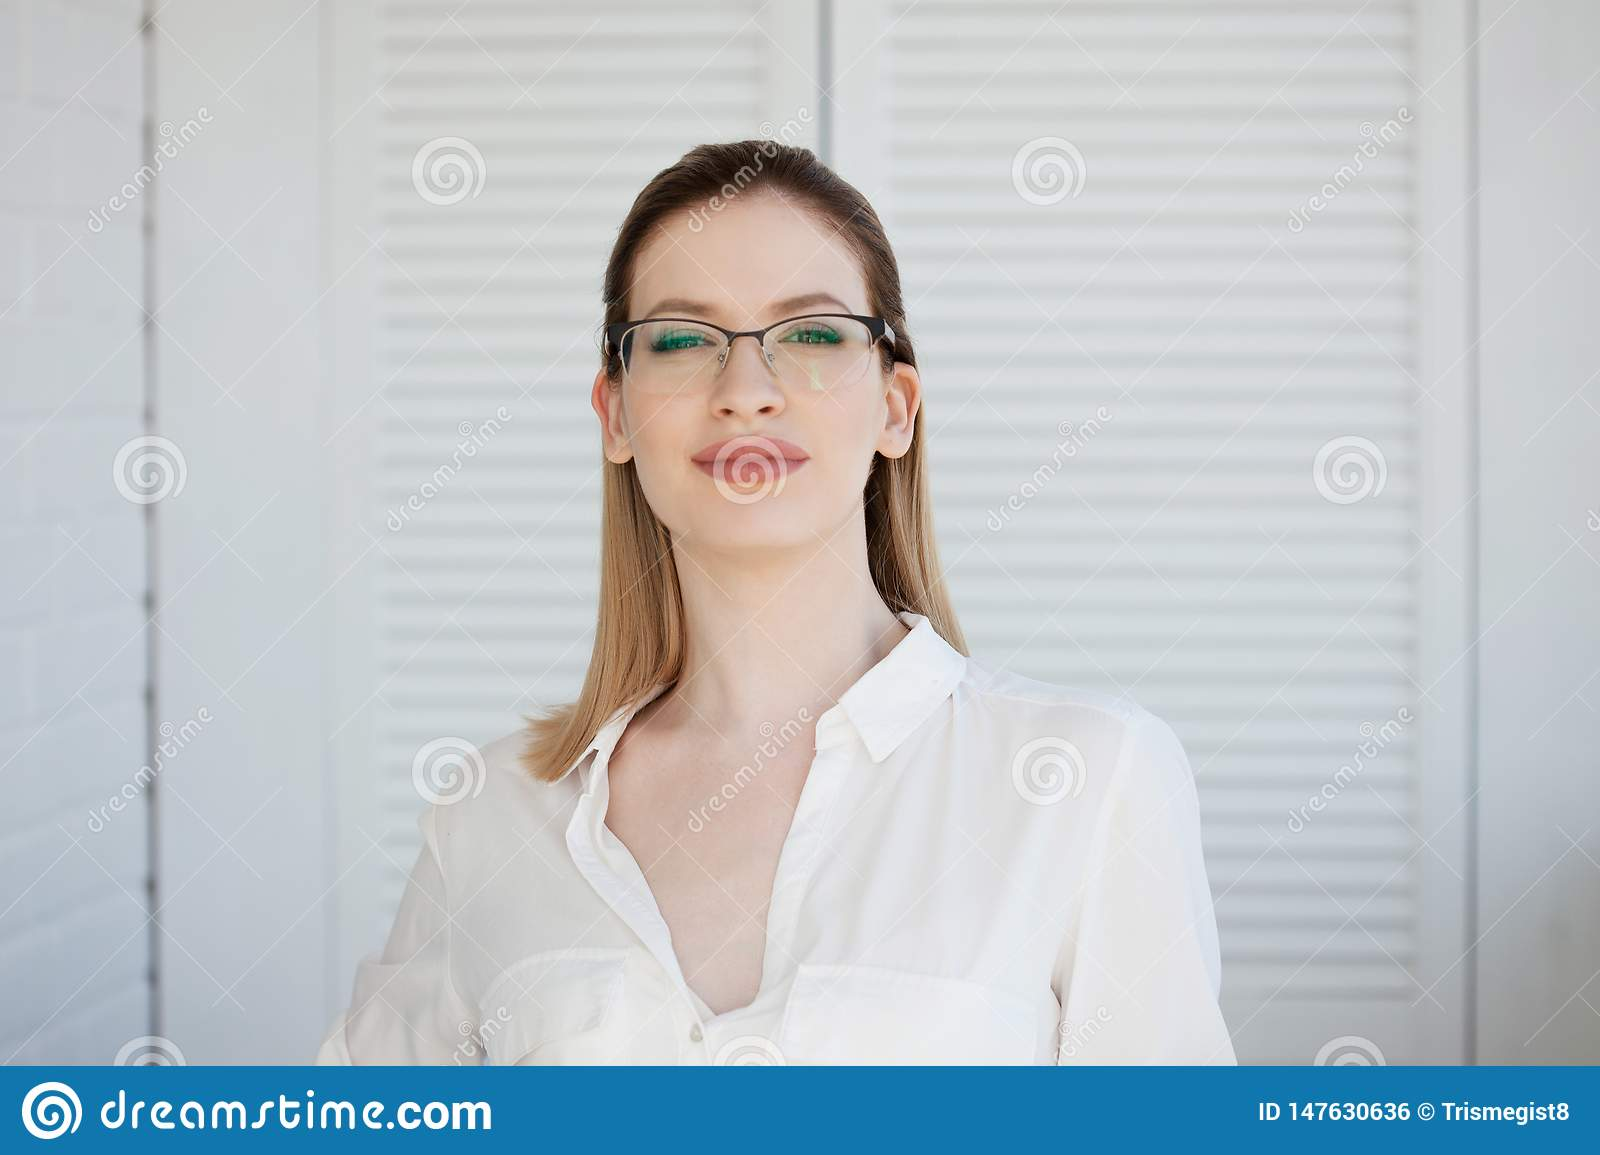 Stylish glasses in a thin frame, vision correction. Portrait of a young woman